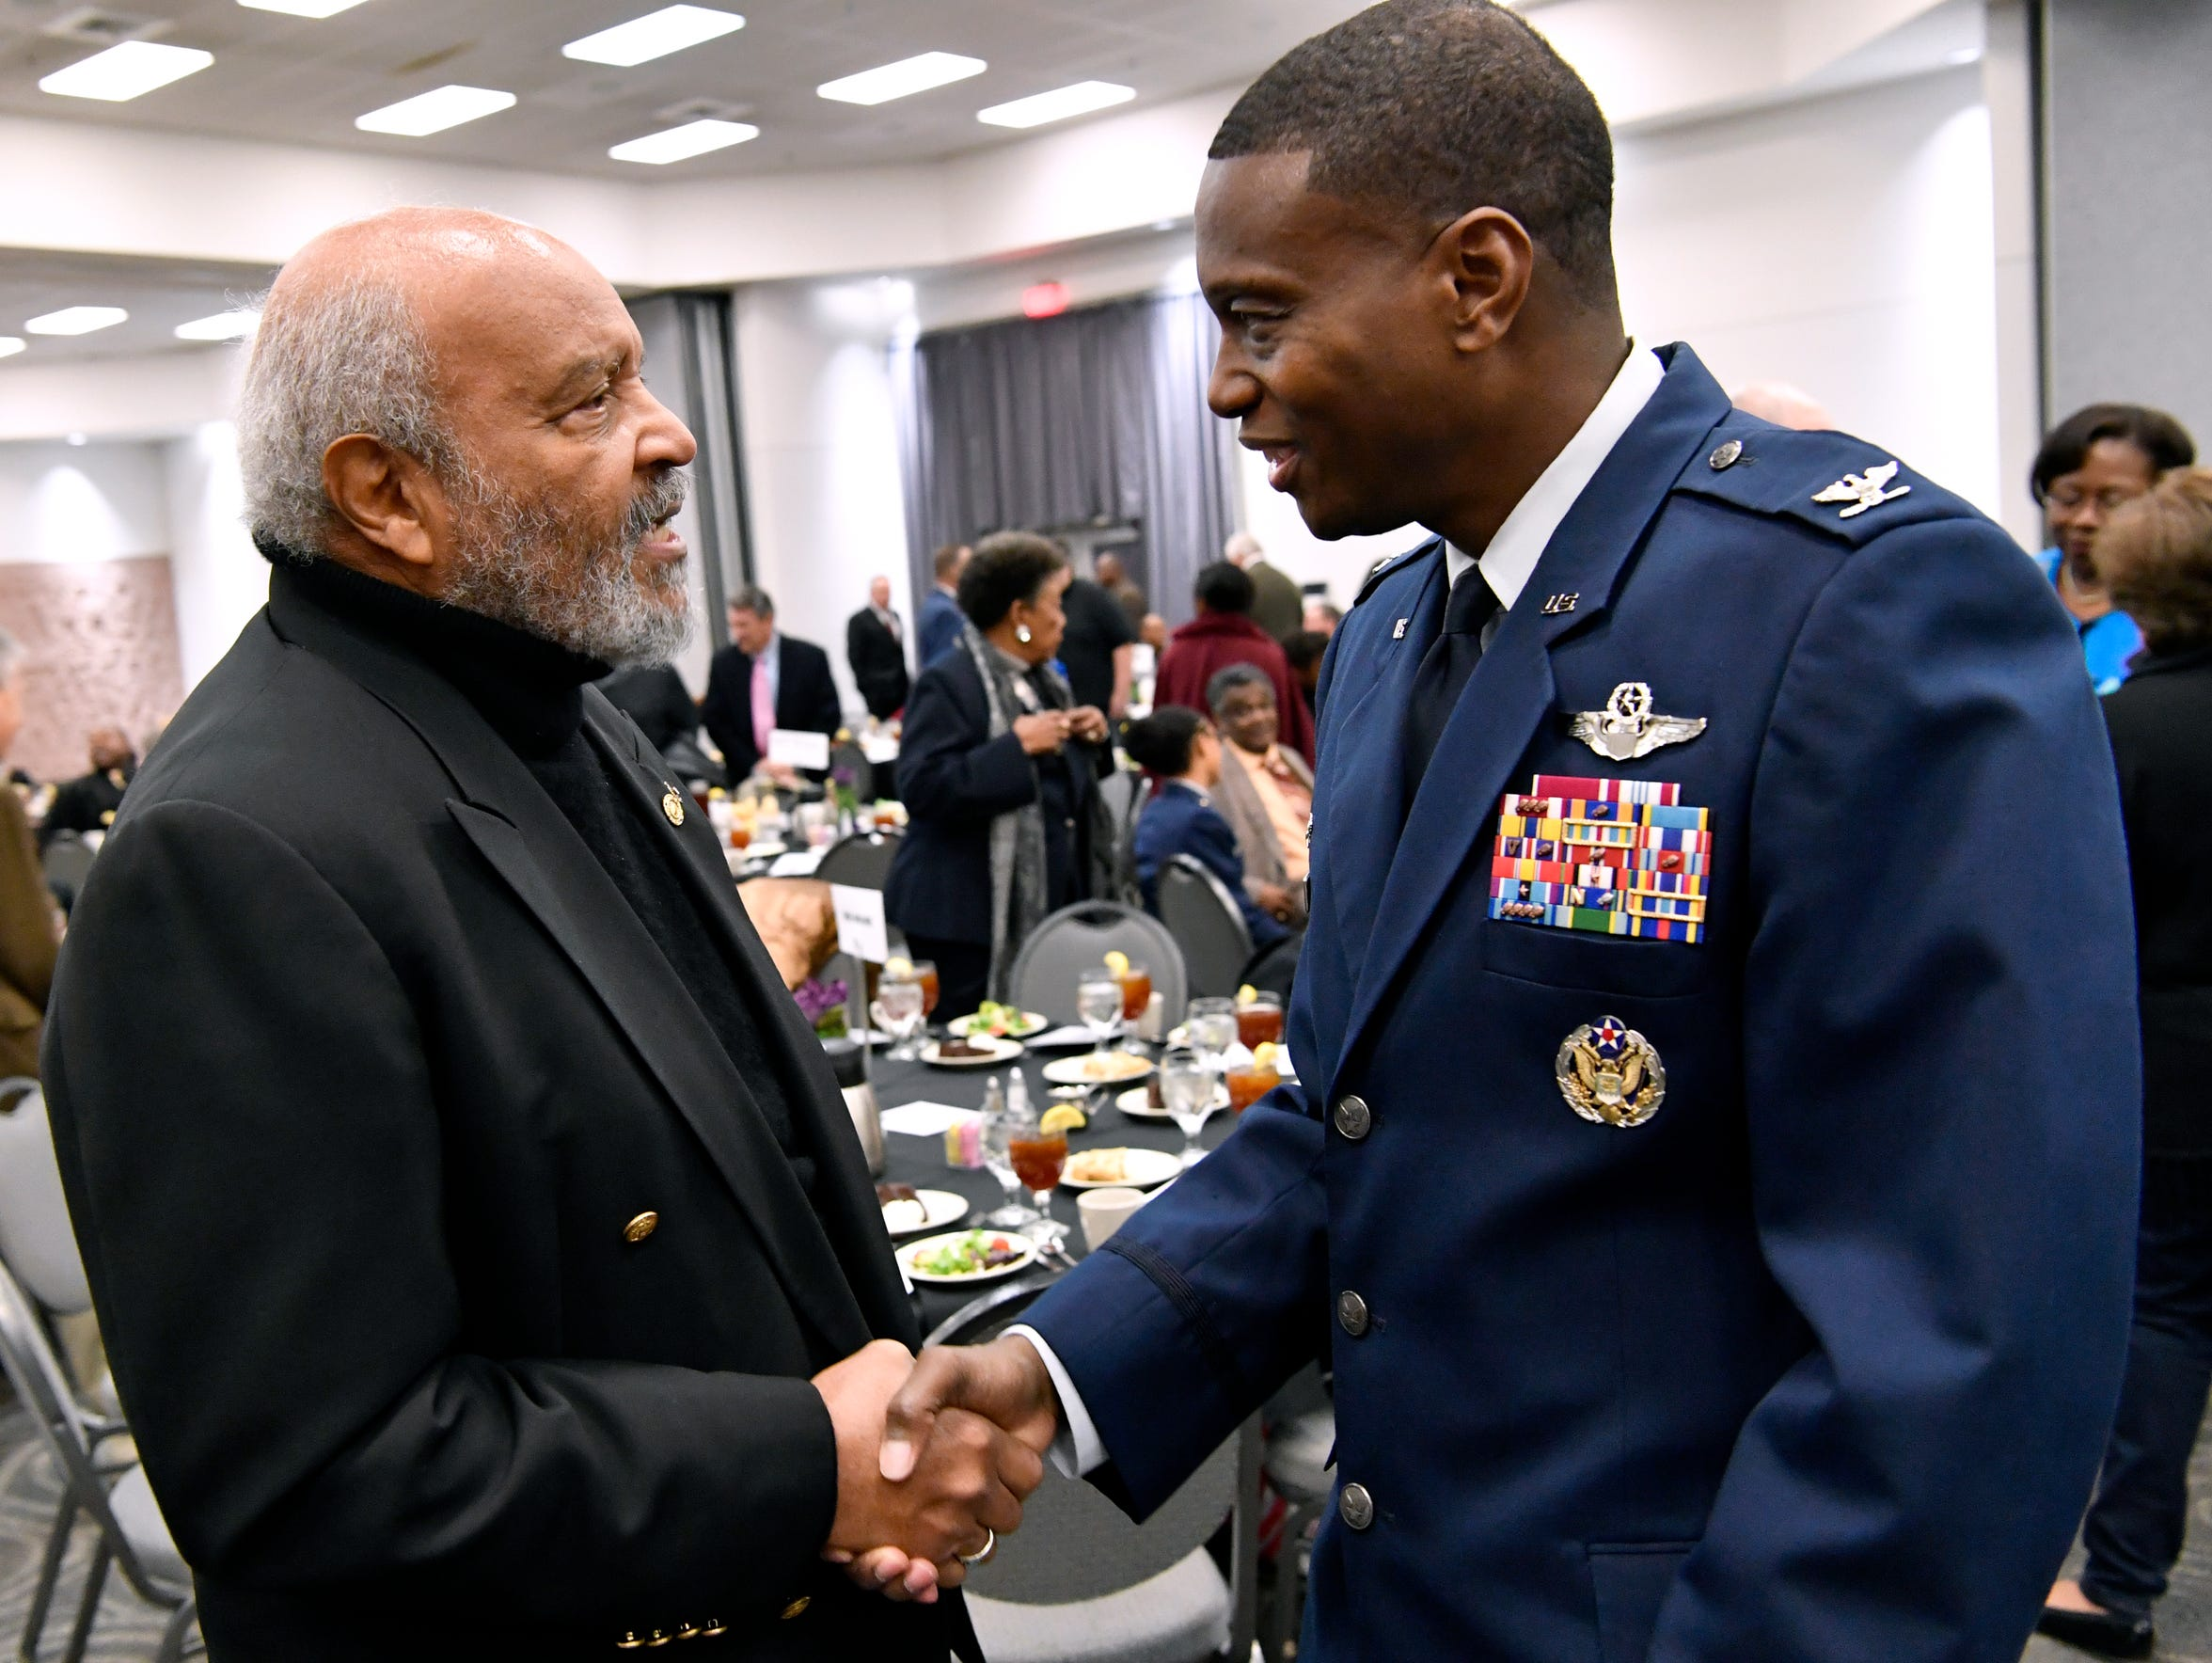 Morris Baker shakes hands with 7th Bomb Wing commander Col. Brandon Parker during Abilene's Martin Luther King Jr. Banquet on Jan. 15.